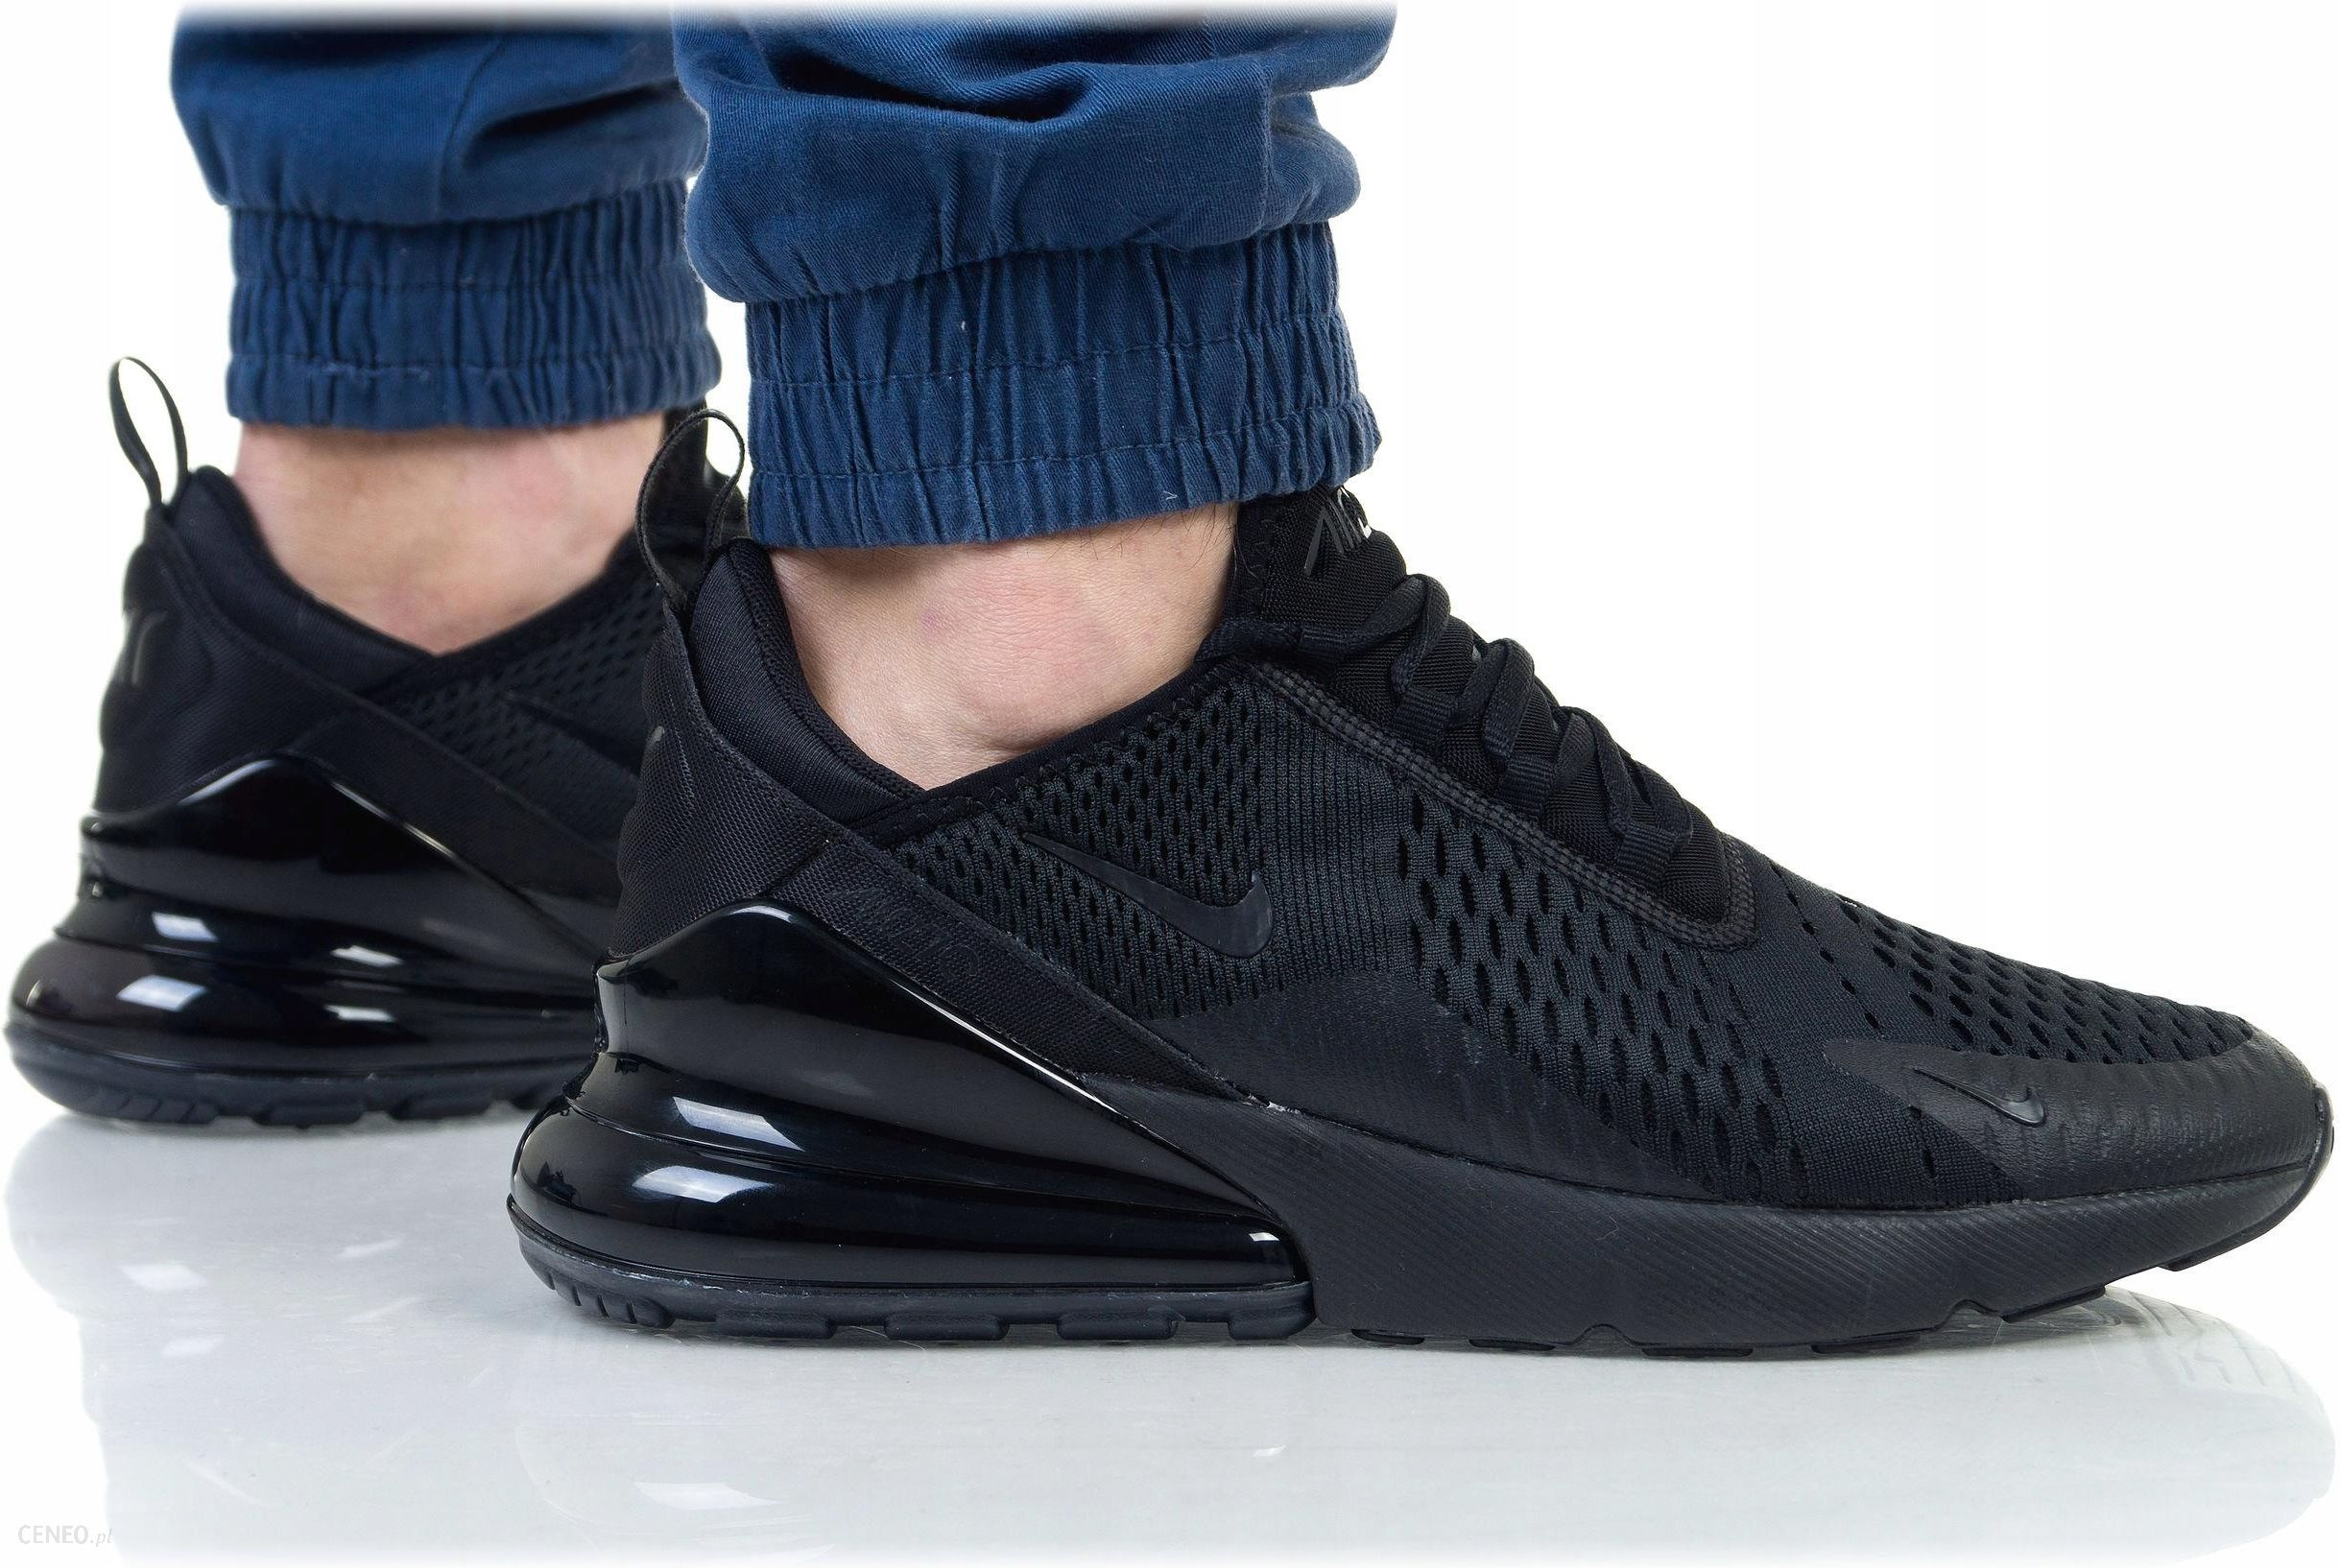 Nike Air Max 270 Trainers In Black AH8050 005 Black Buty